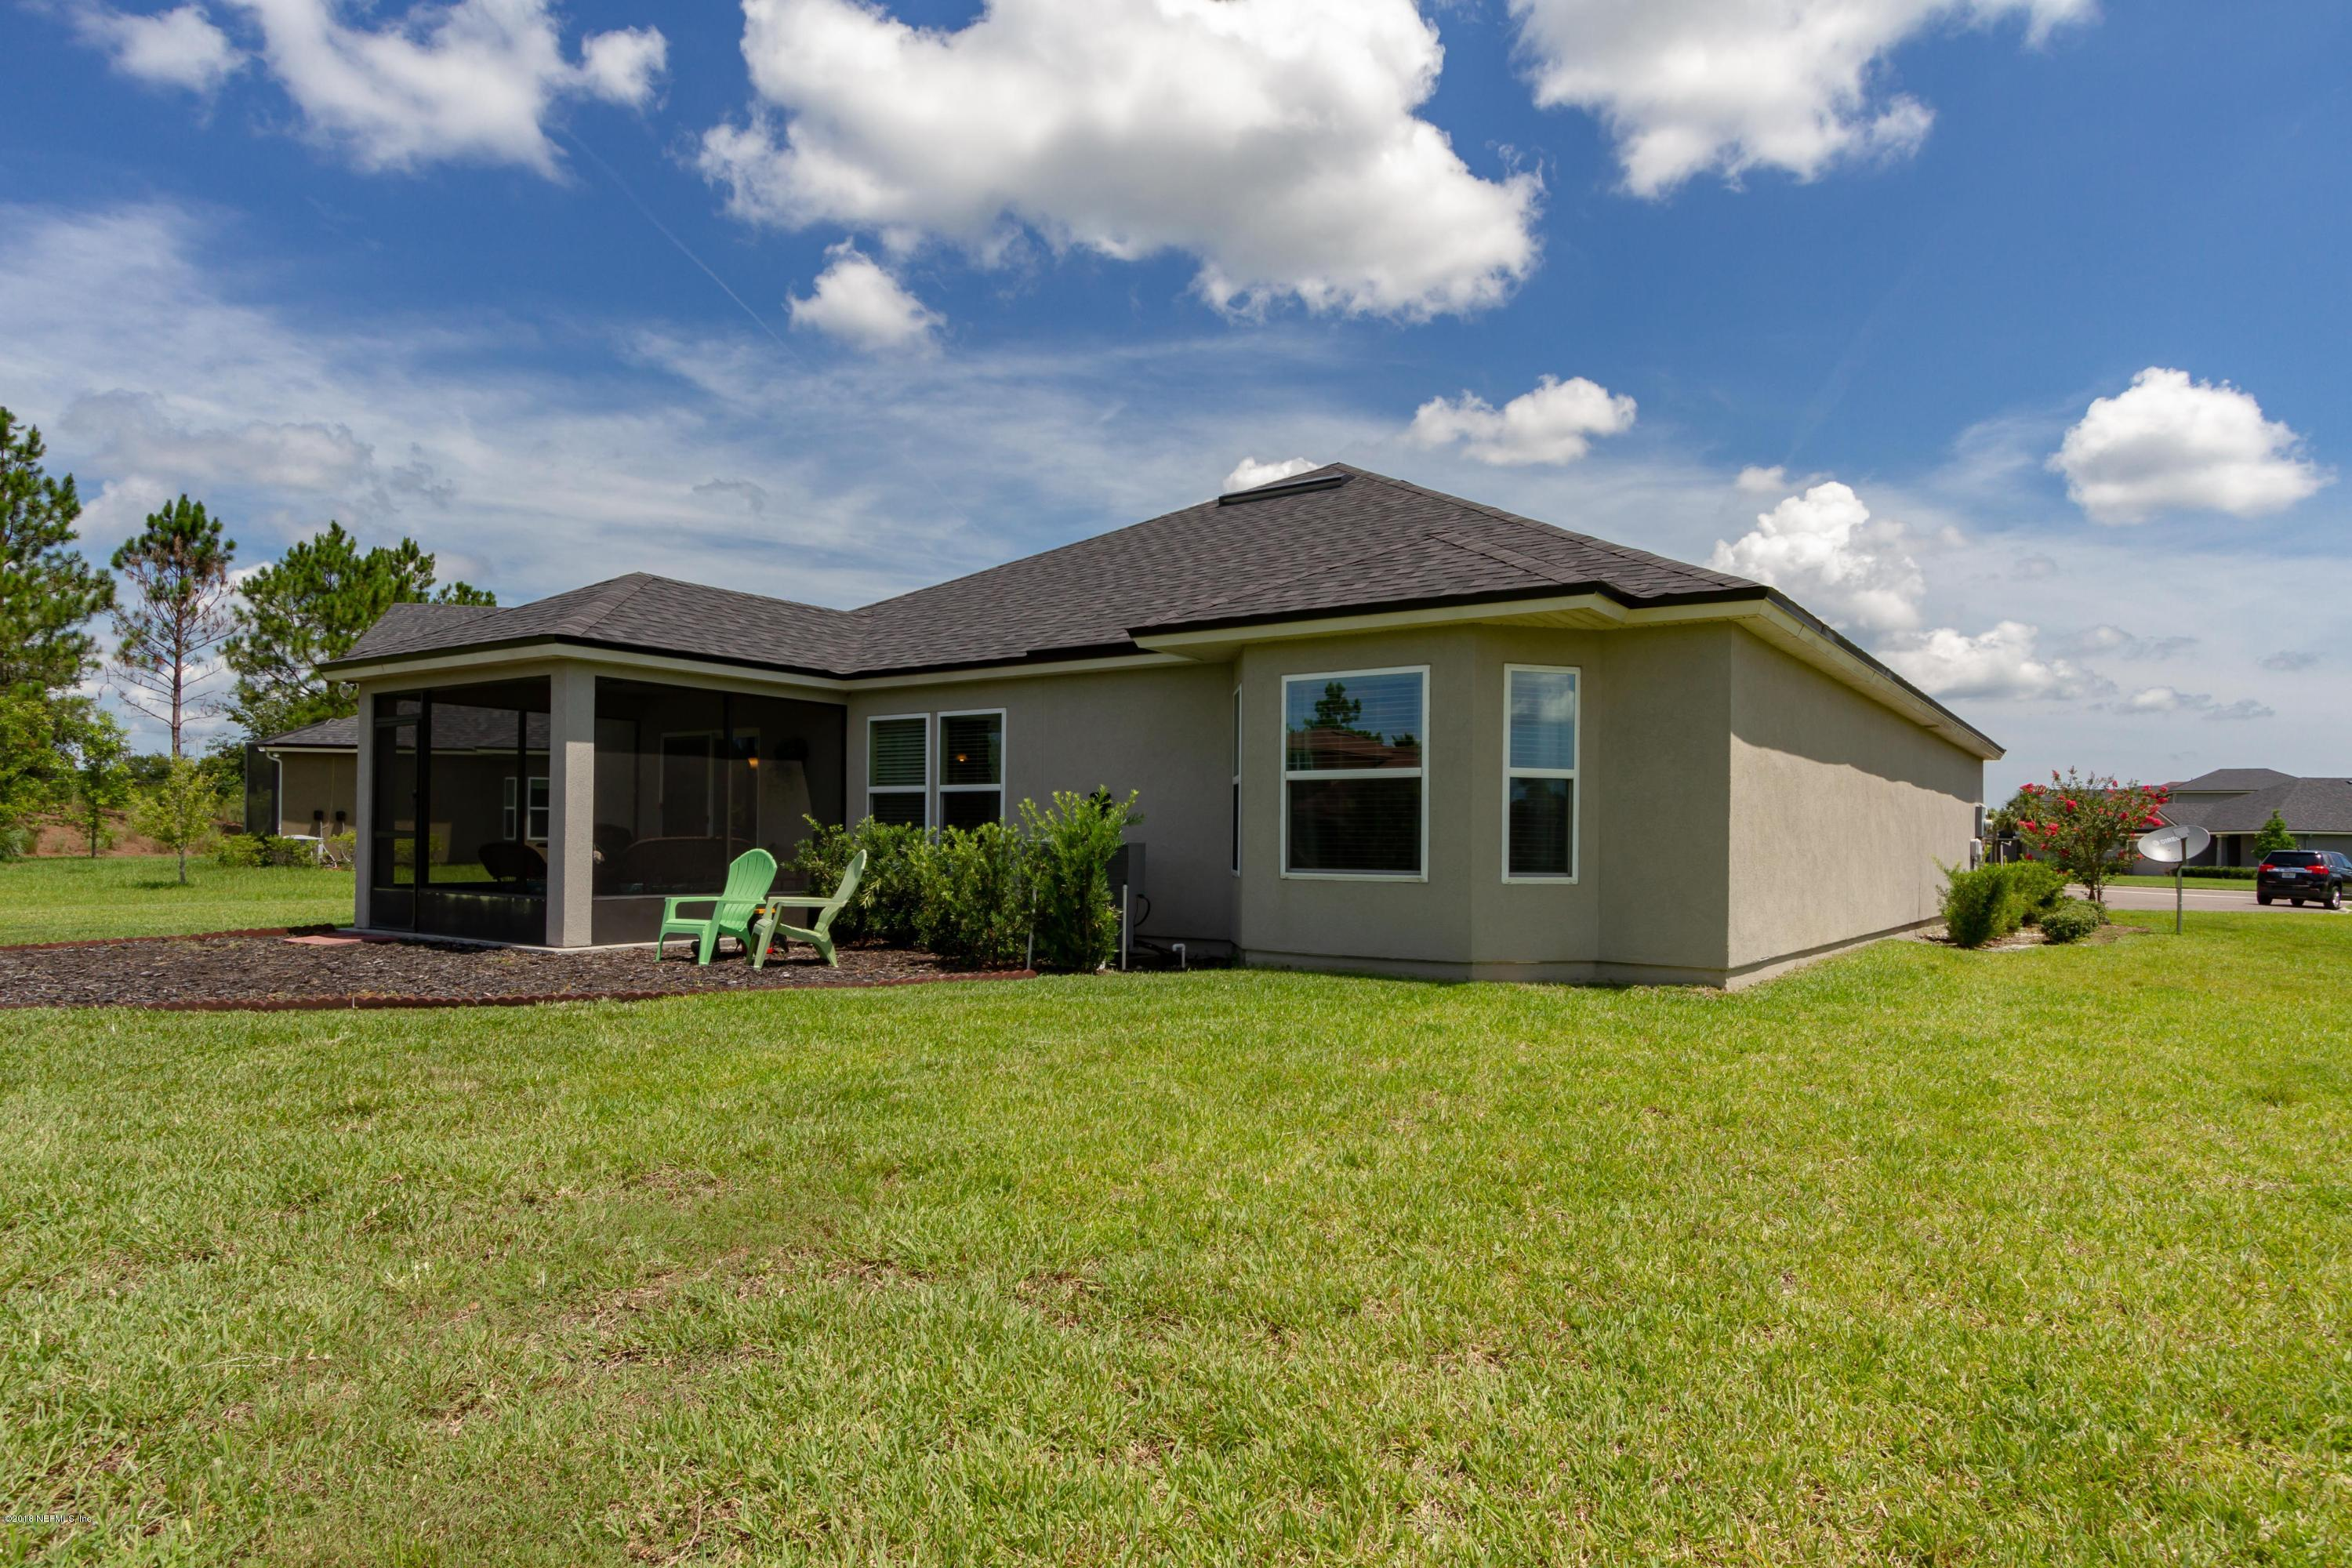 604 SAPORA, ST AUGUSTINE, FLORIDA 32092, 4 Bedrooms Bedrooms, ,2 BathroomsBathrooms,Residential - single family,For sale,SAPORA,944717